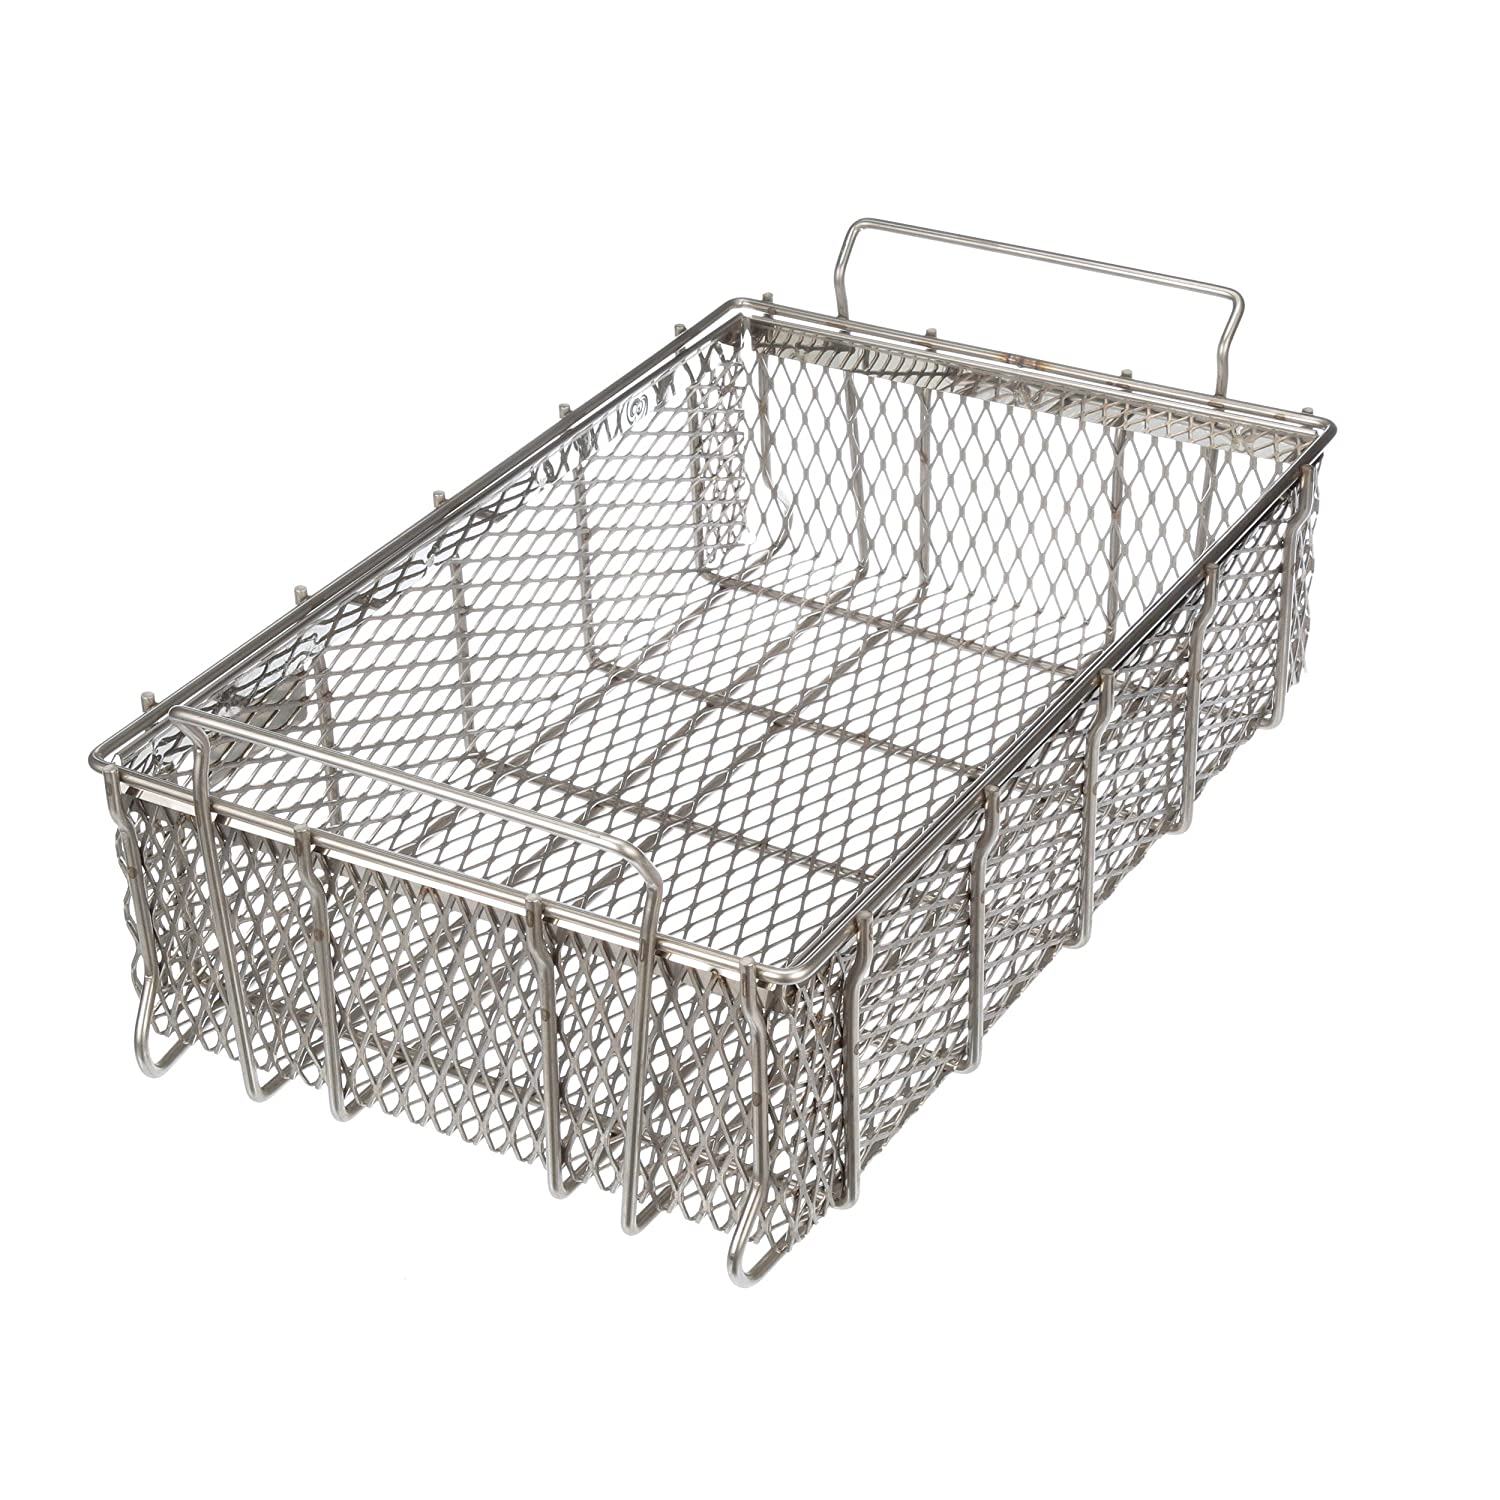 Marlin Steel Expanded New Branded goods product type Metal Tote 21